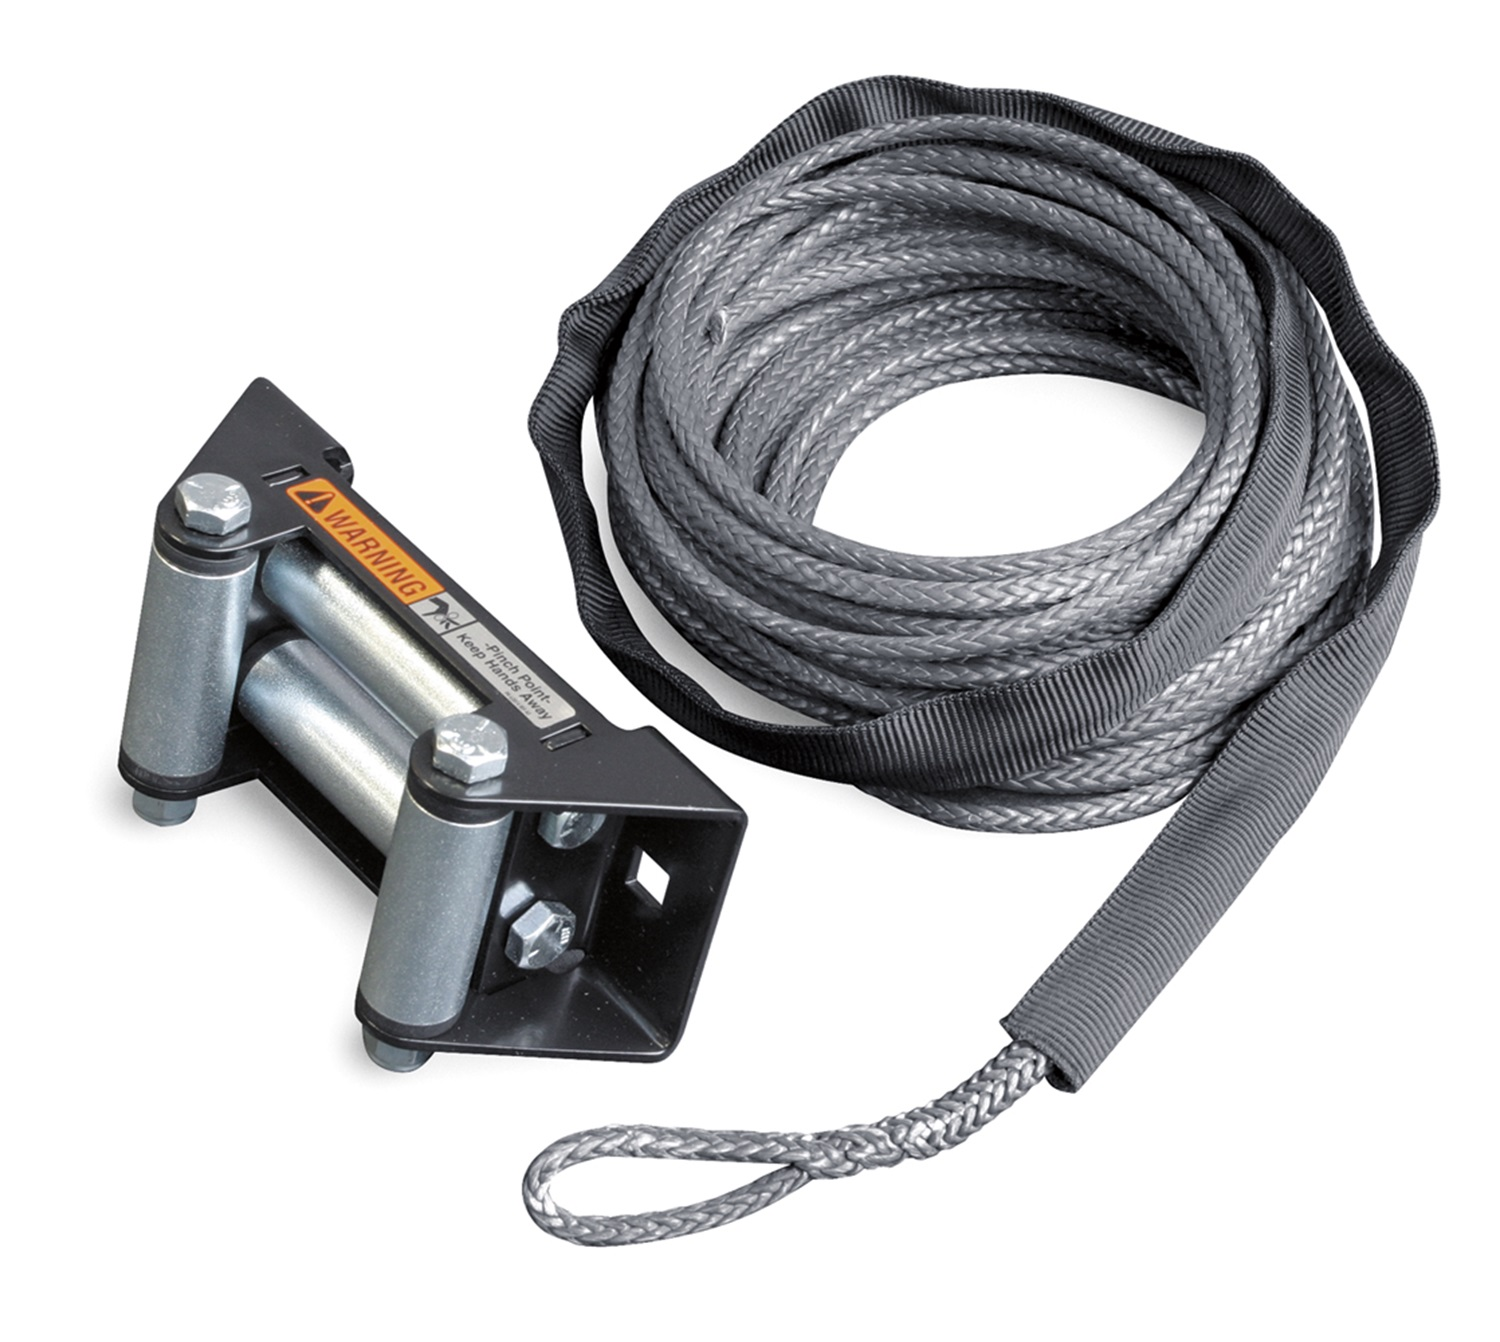 Warn 72128 Synthetic Rope Replacement Kit Ebay